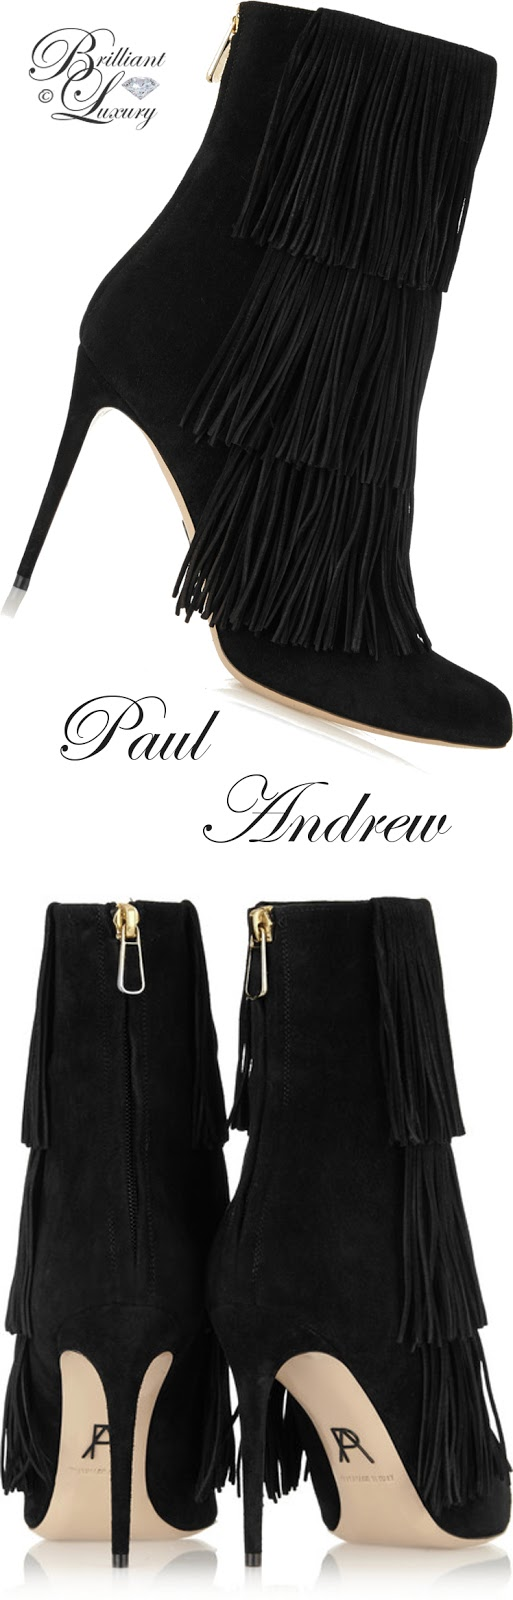 Brilliant Luxury ♦ Paul Andrew Taos Fringed Suede Ankle Boots